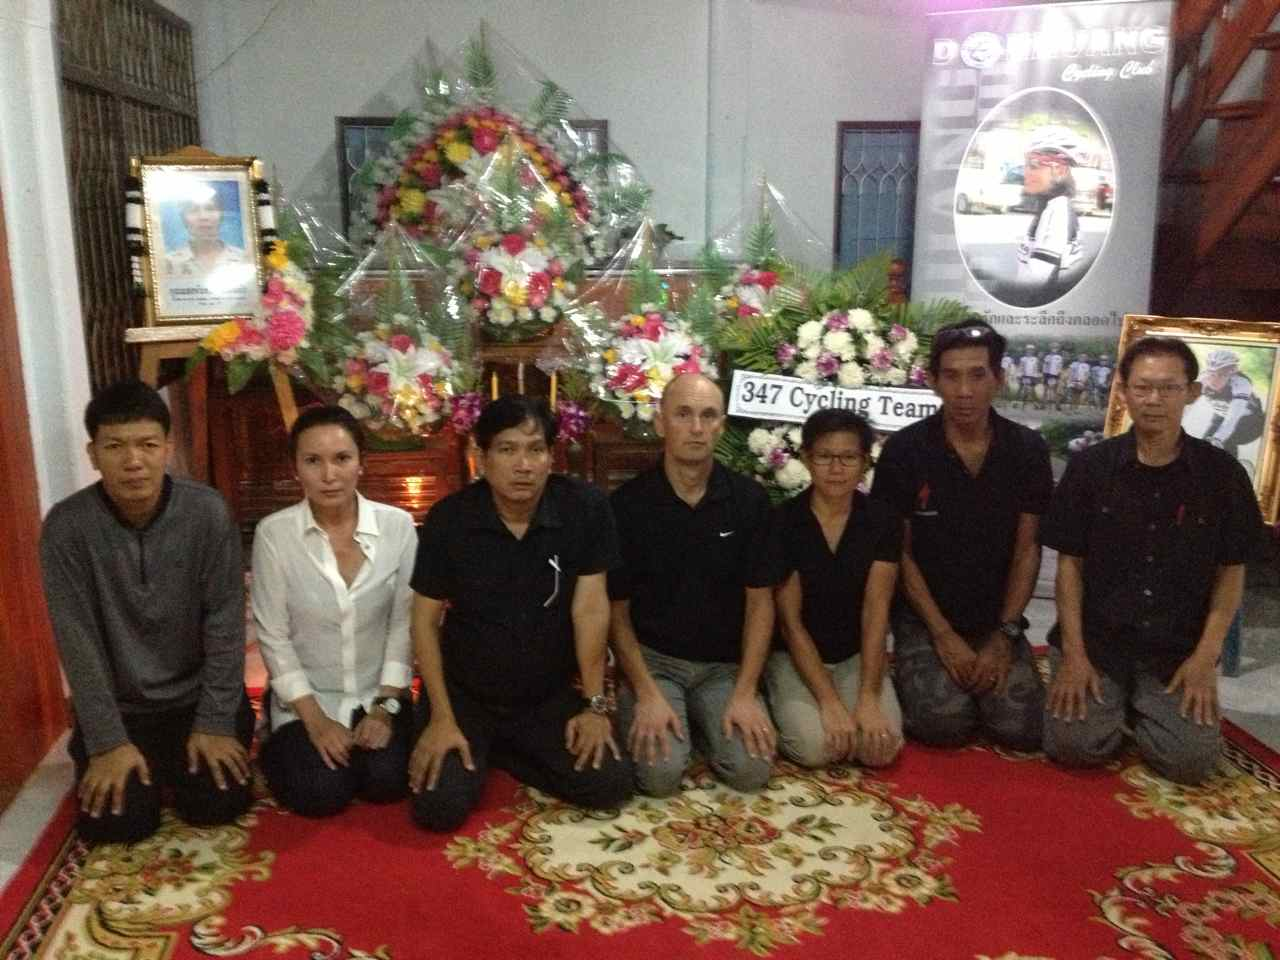 Ton, A, P'Ben, Joakim, Wej, P'Nop and P'Wichit in front of Saeng's coffin